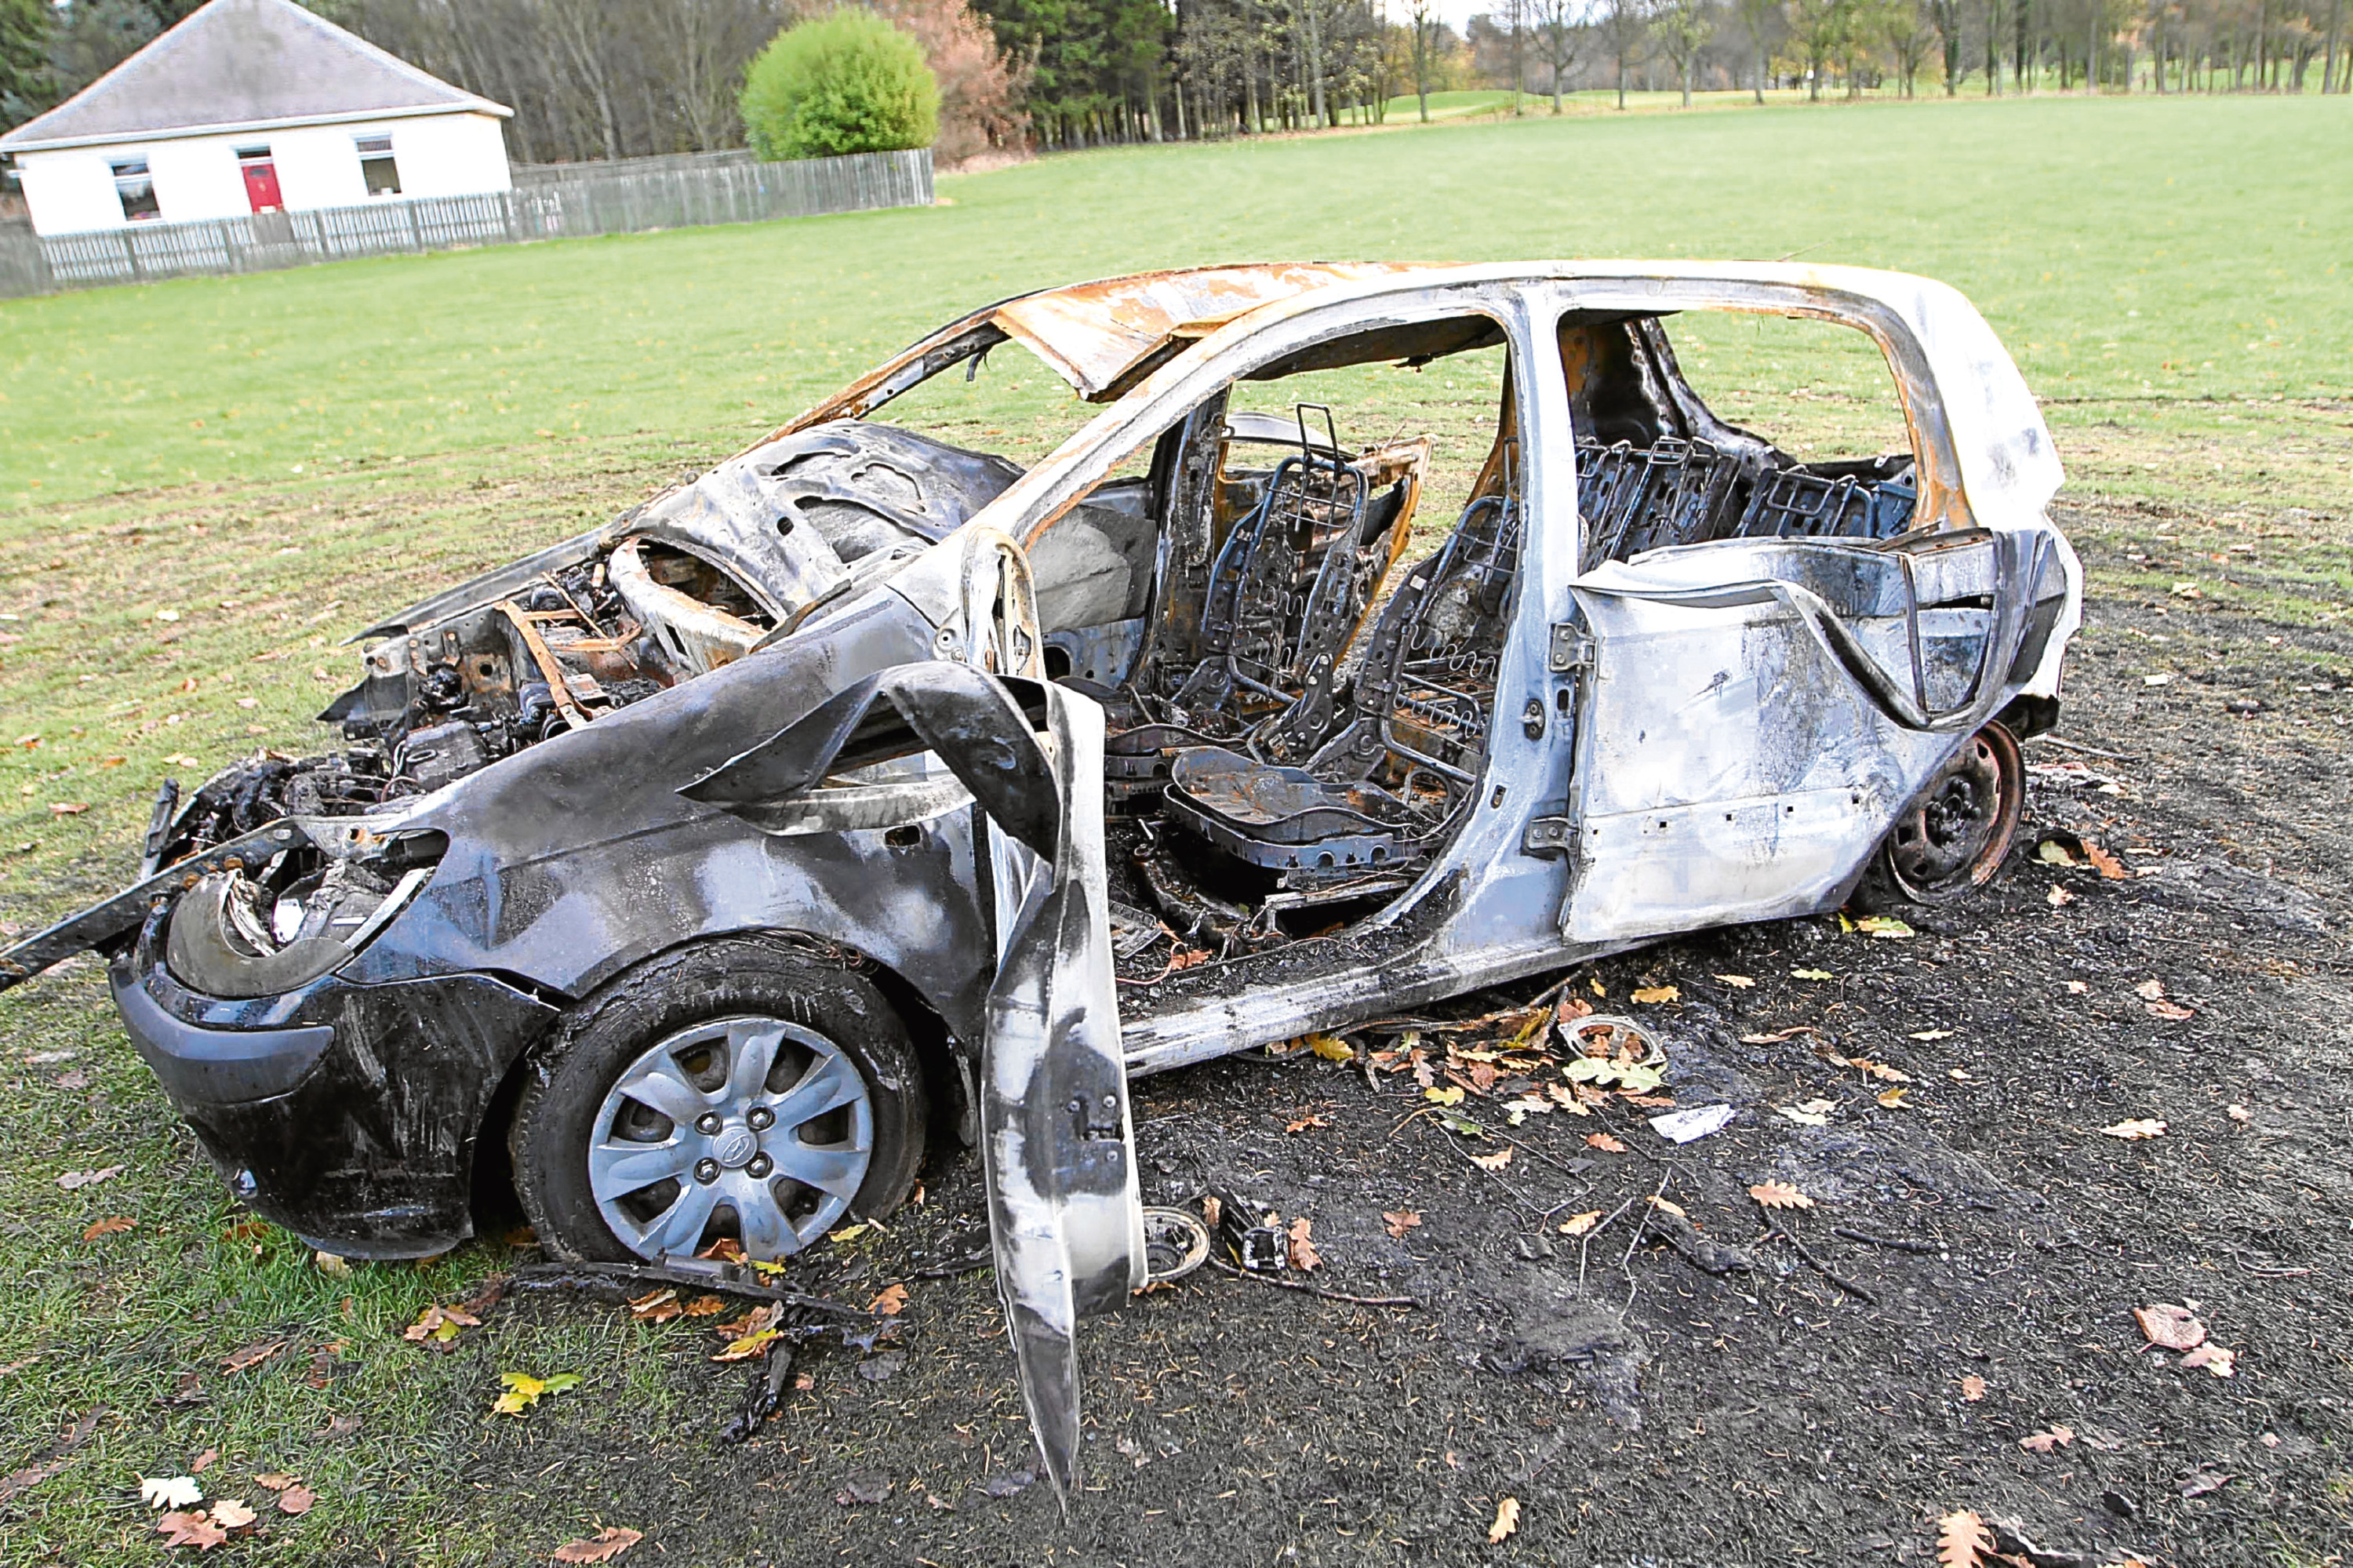 The car was completely destroyed in the blaze at Caird Park.